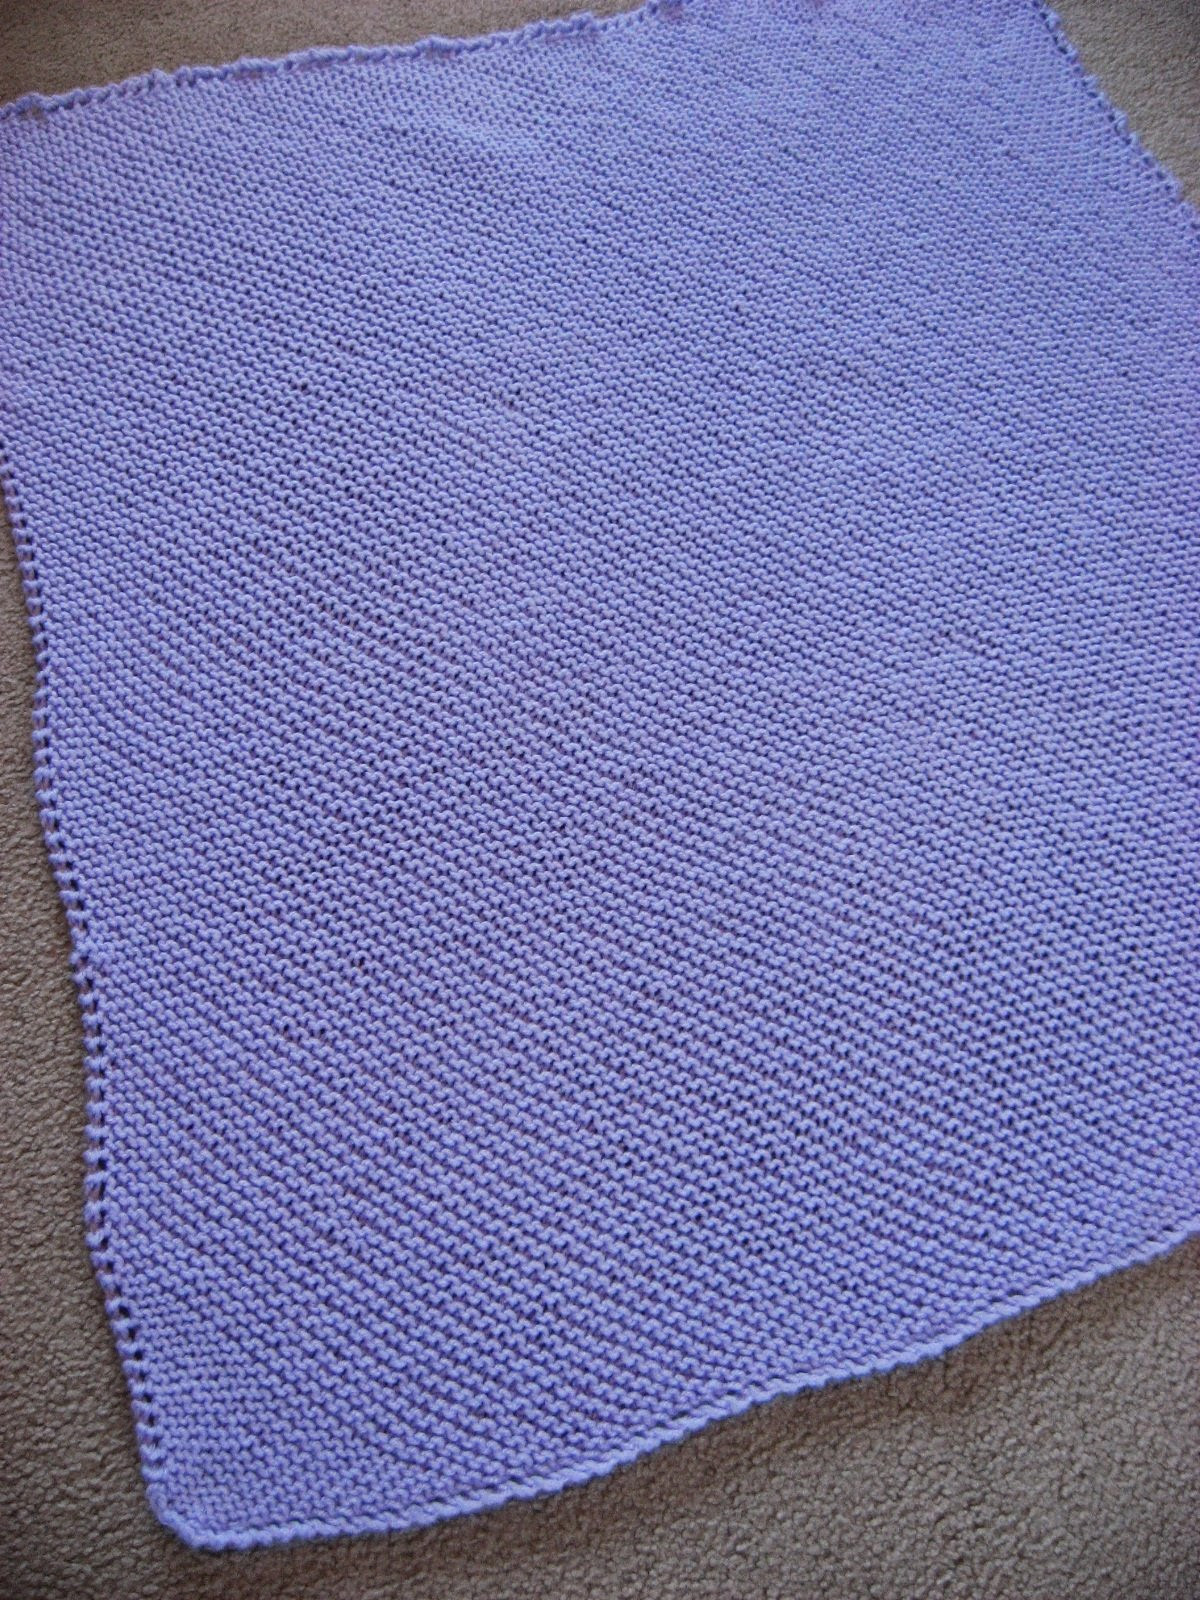 easy knitted baby blanket instructions